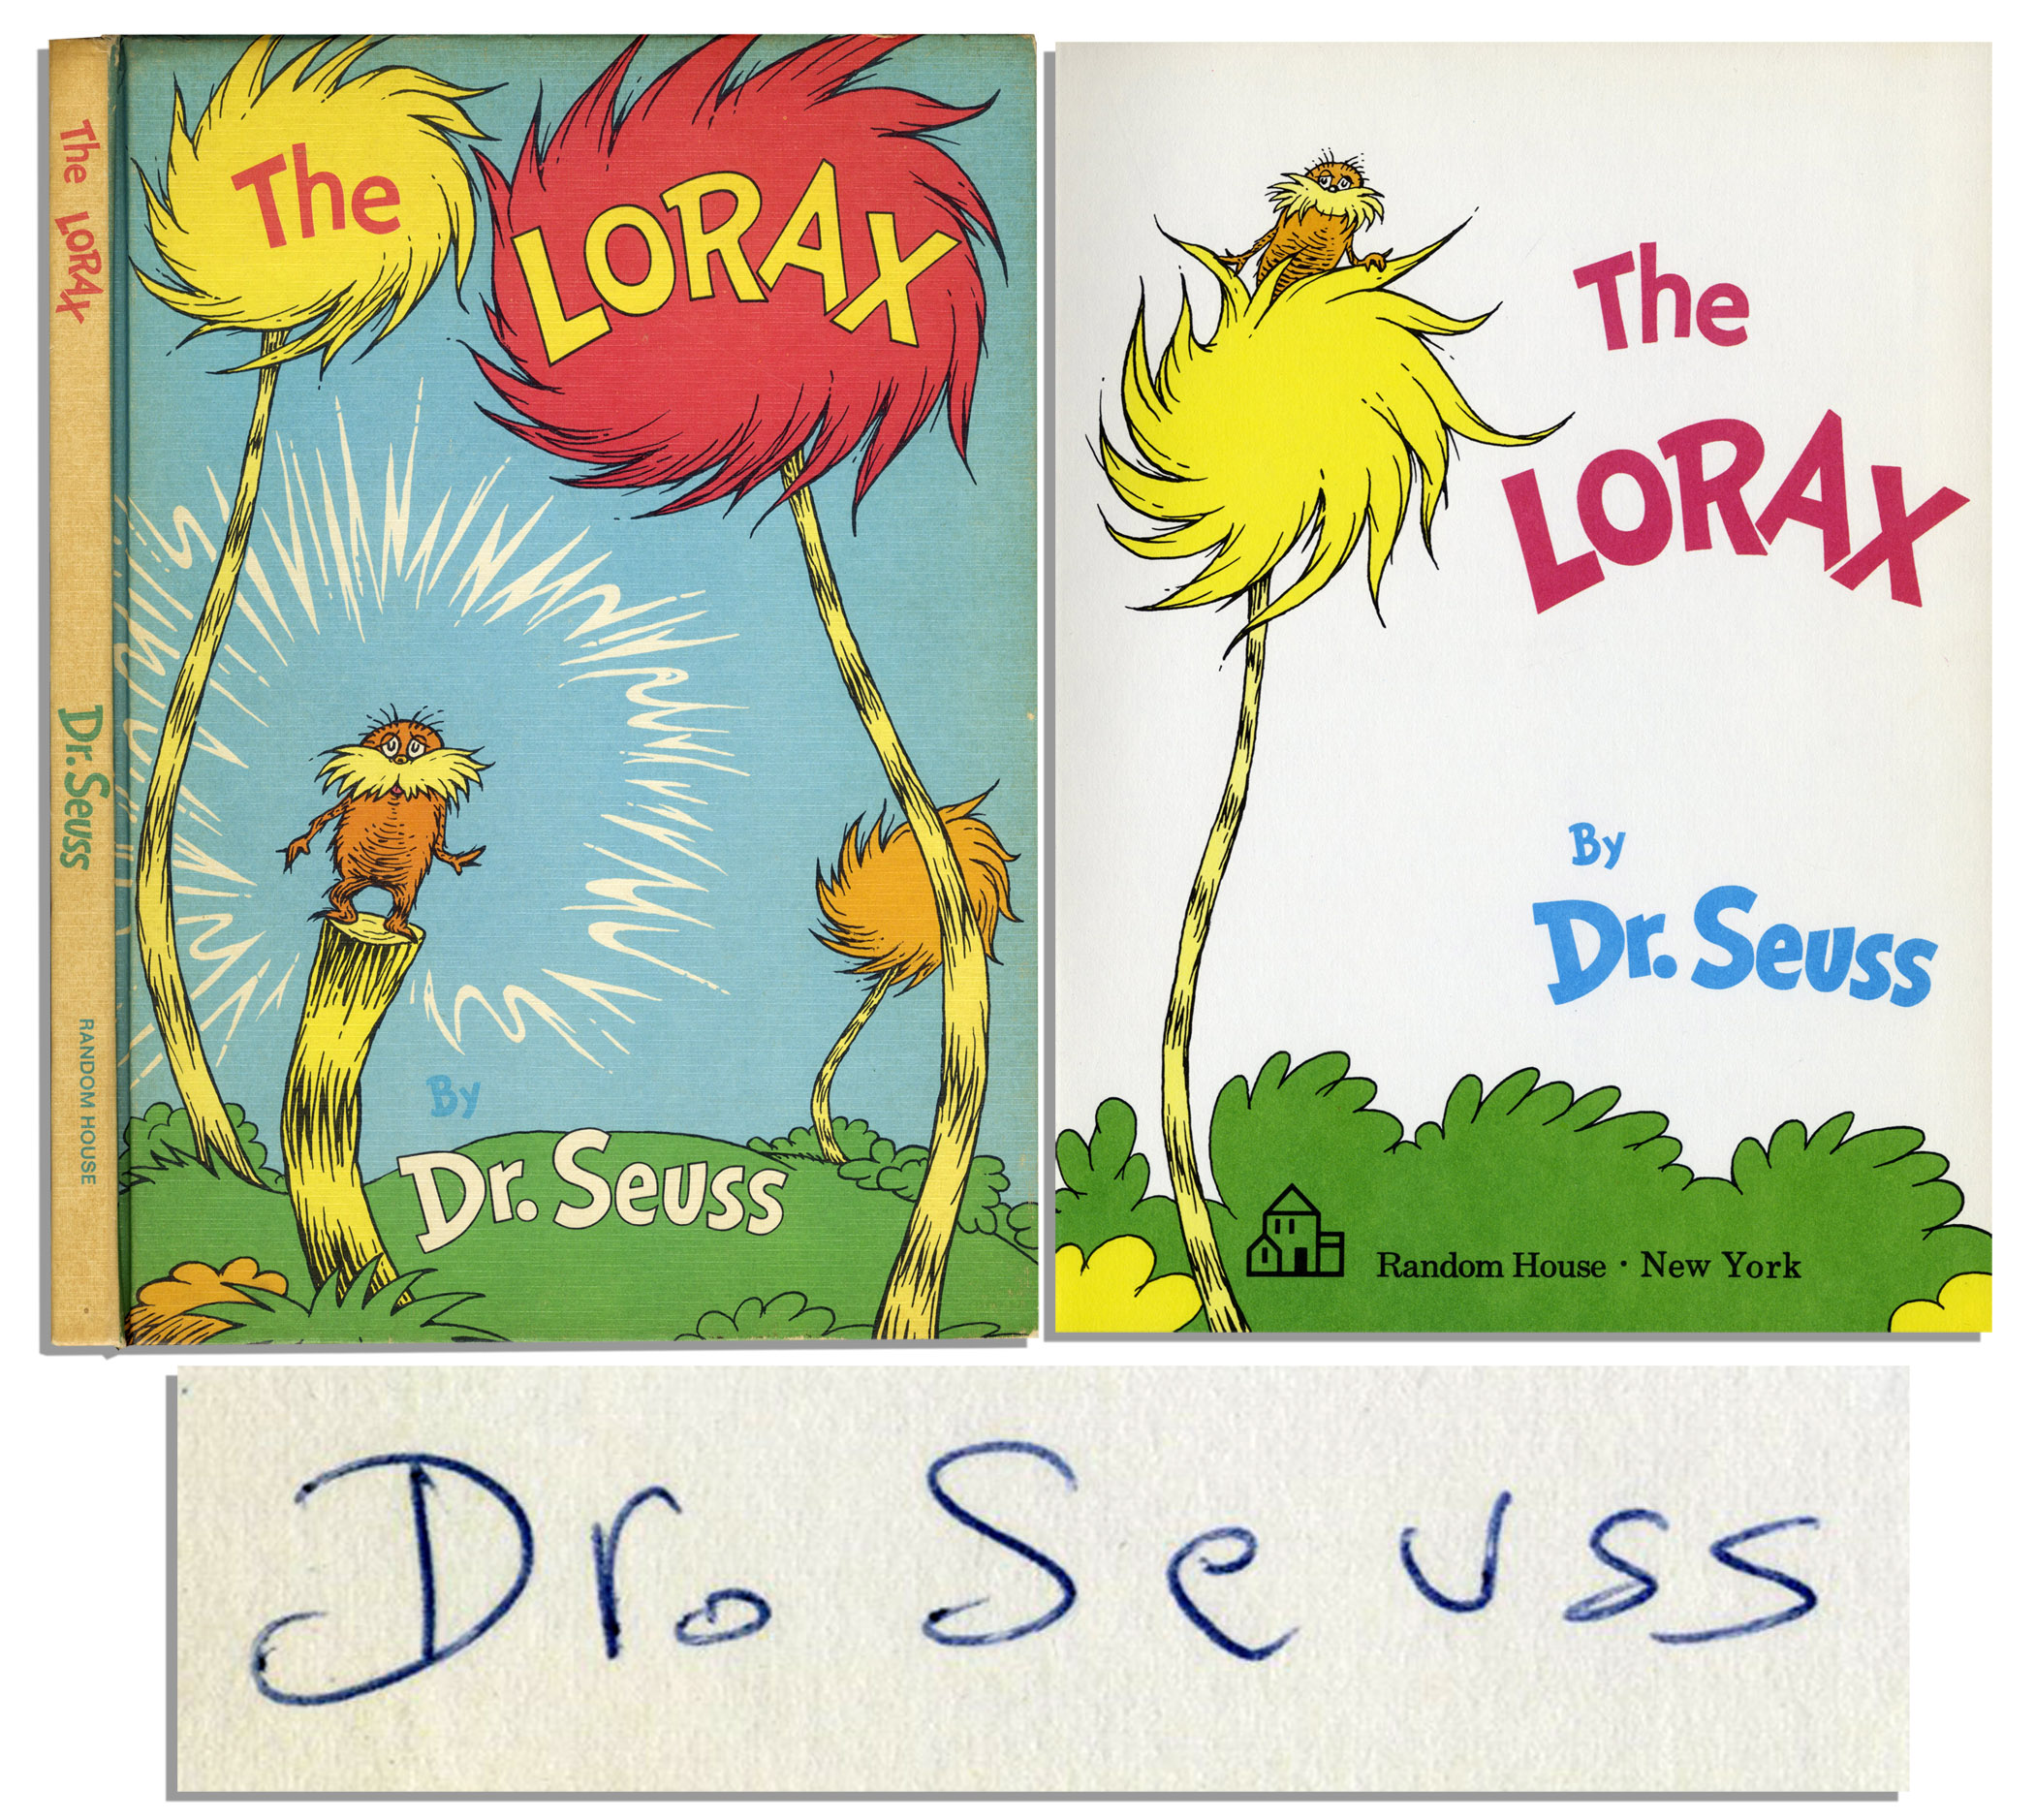 Dr. Seuss Autograph Very Rare ''The Lorax'' First Edition, First Printing Signed by Dr. Seuss